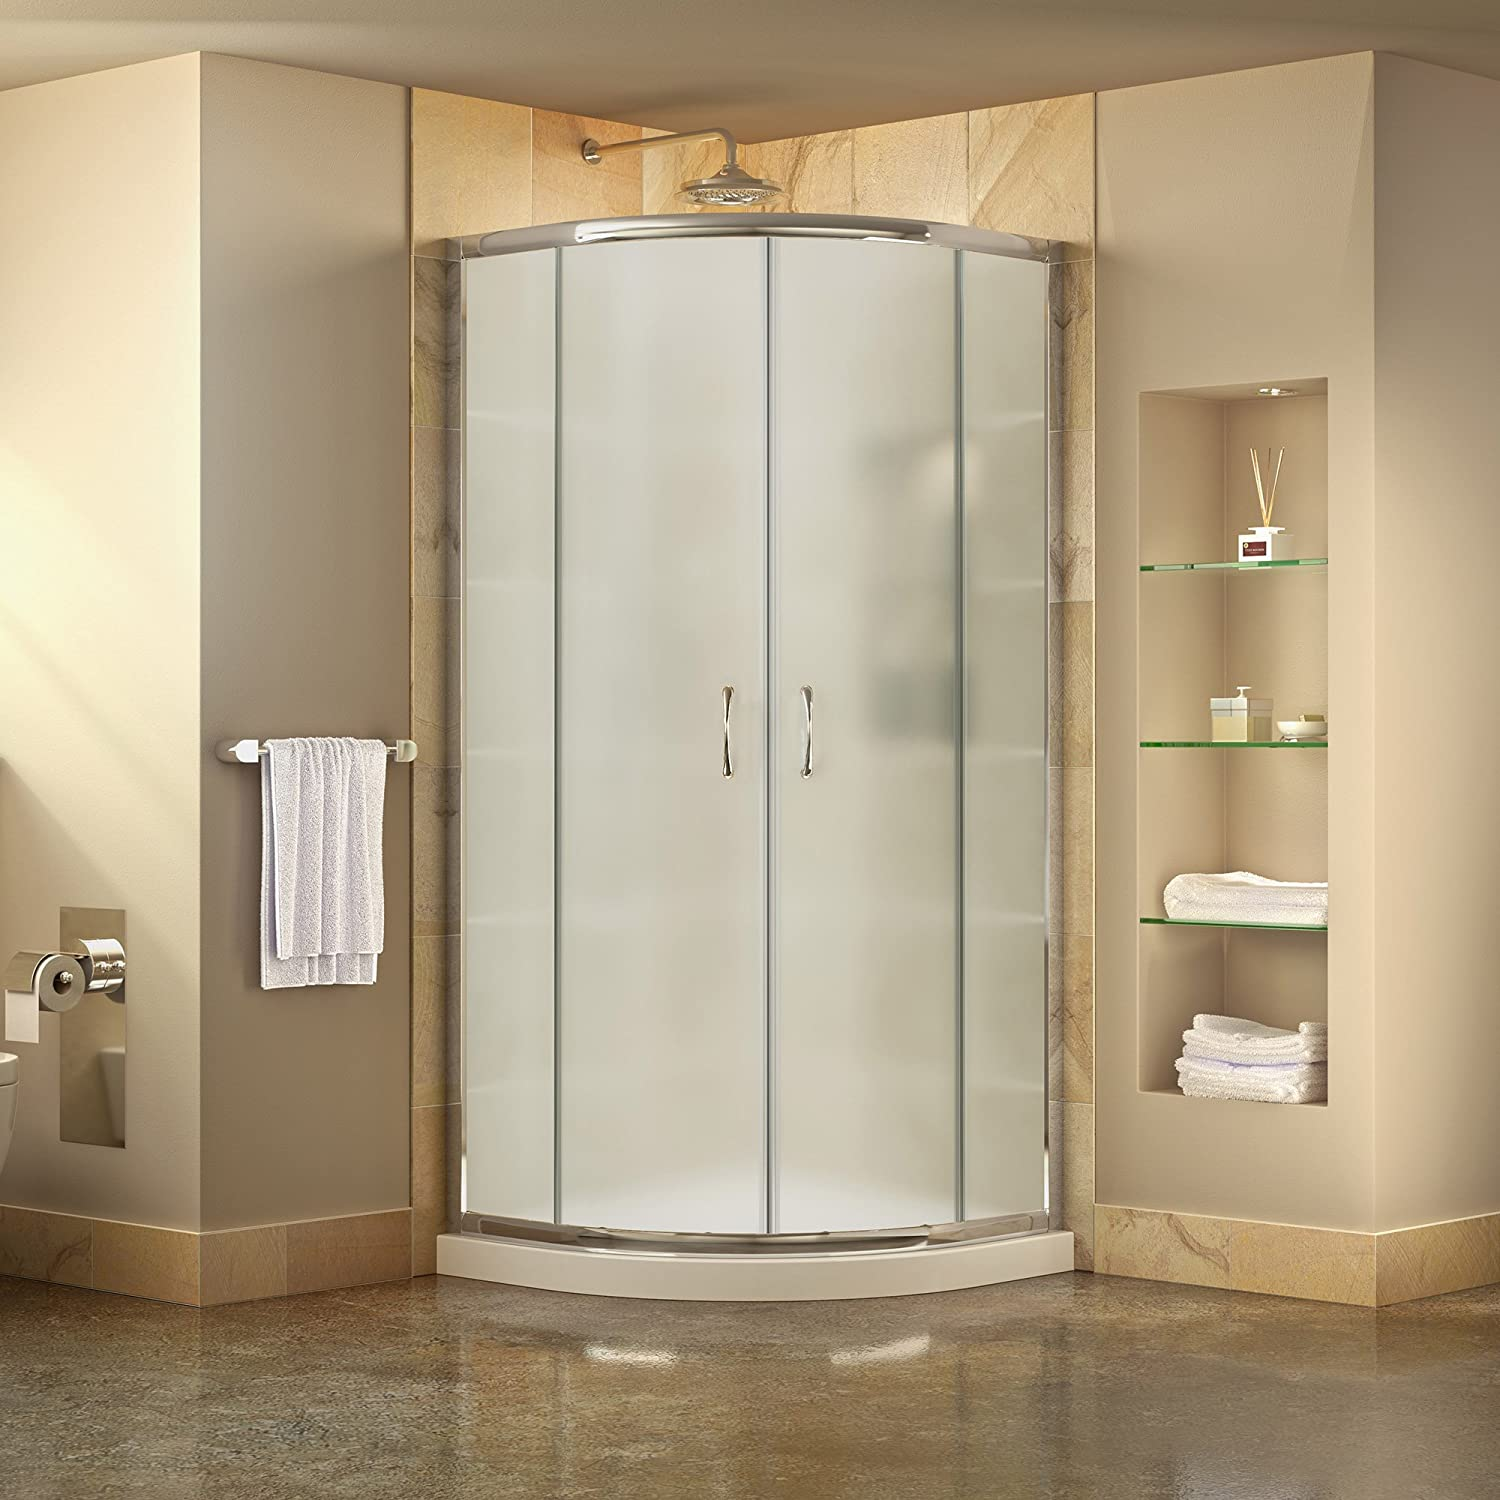 DreamLine Prime 33 in. D x 33 in. W Kit, with Corner Sliding Shower ...